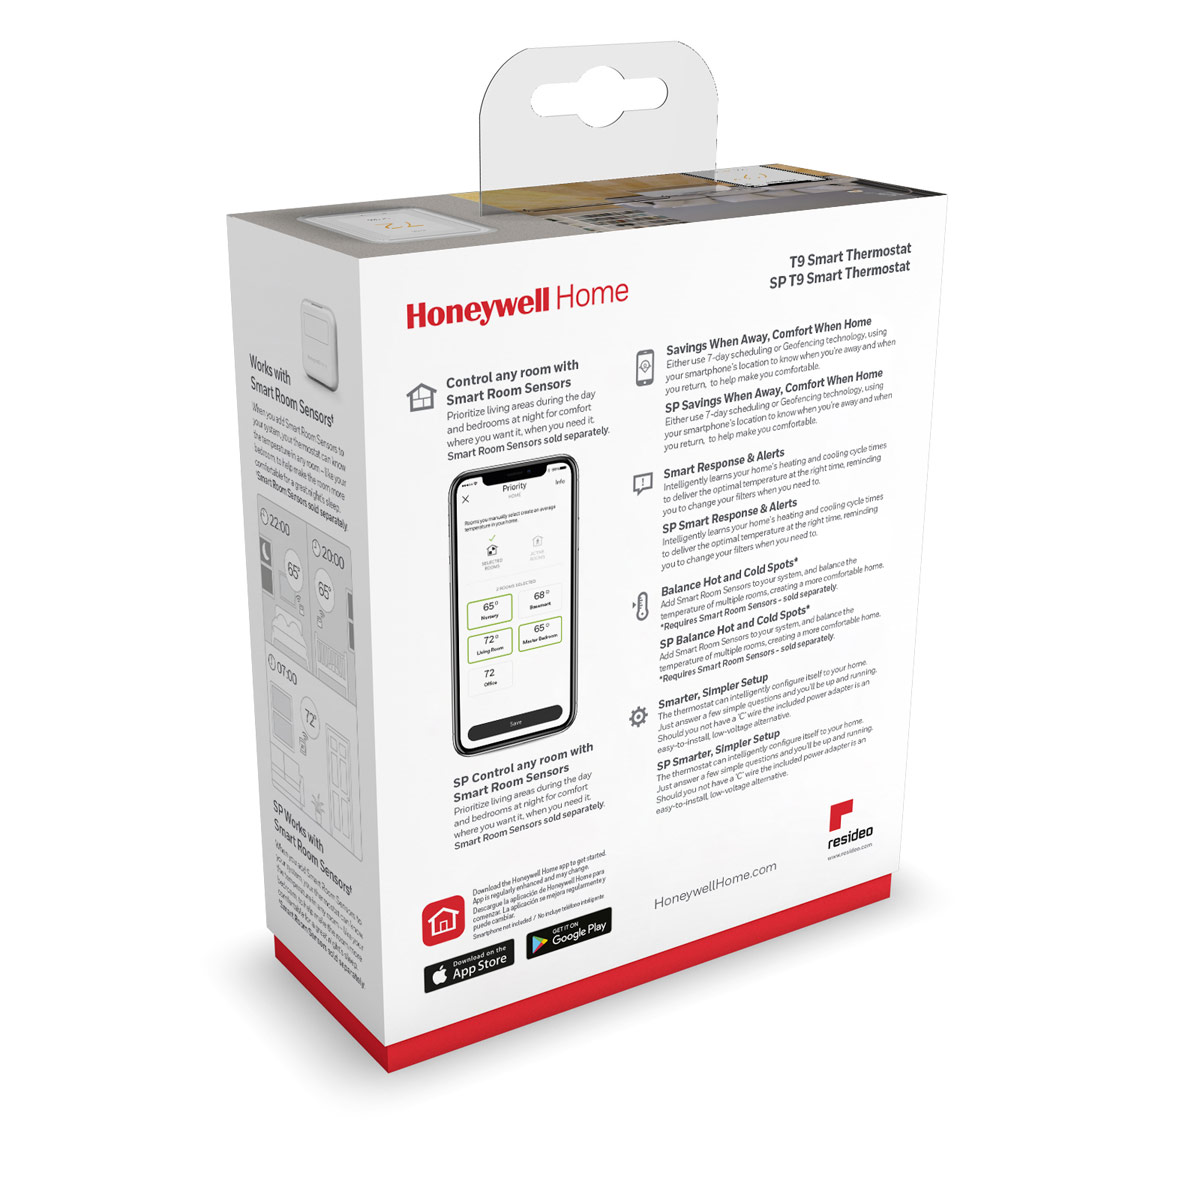 Honeywell Home T9 WIFI Smart Thermostat with RoomSmart Sensor - RCHT9610WFSW2003/W